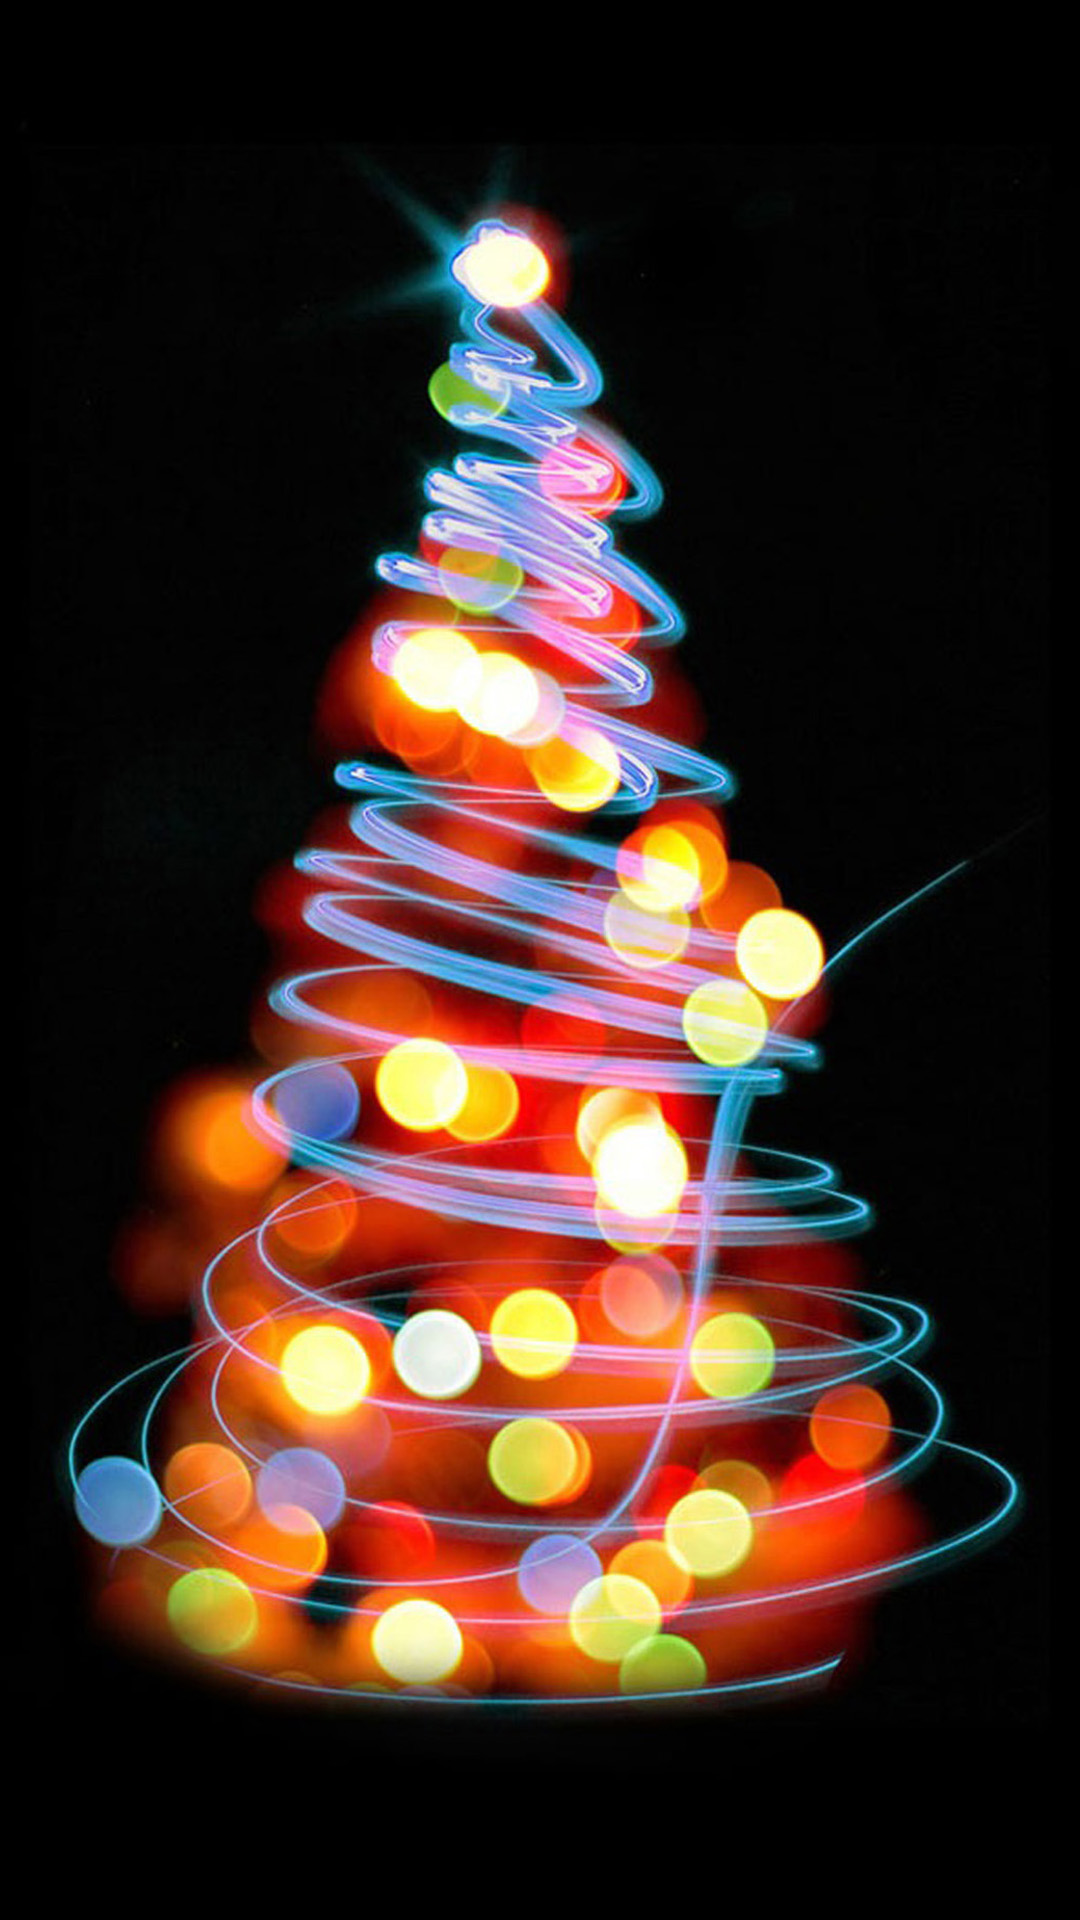 Glowing Lights Christmas Tree iPhone Wallpapers